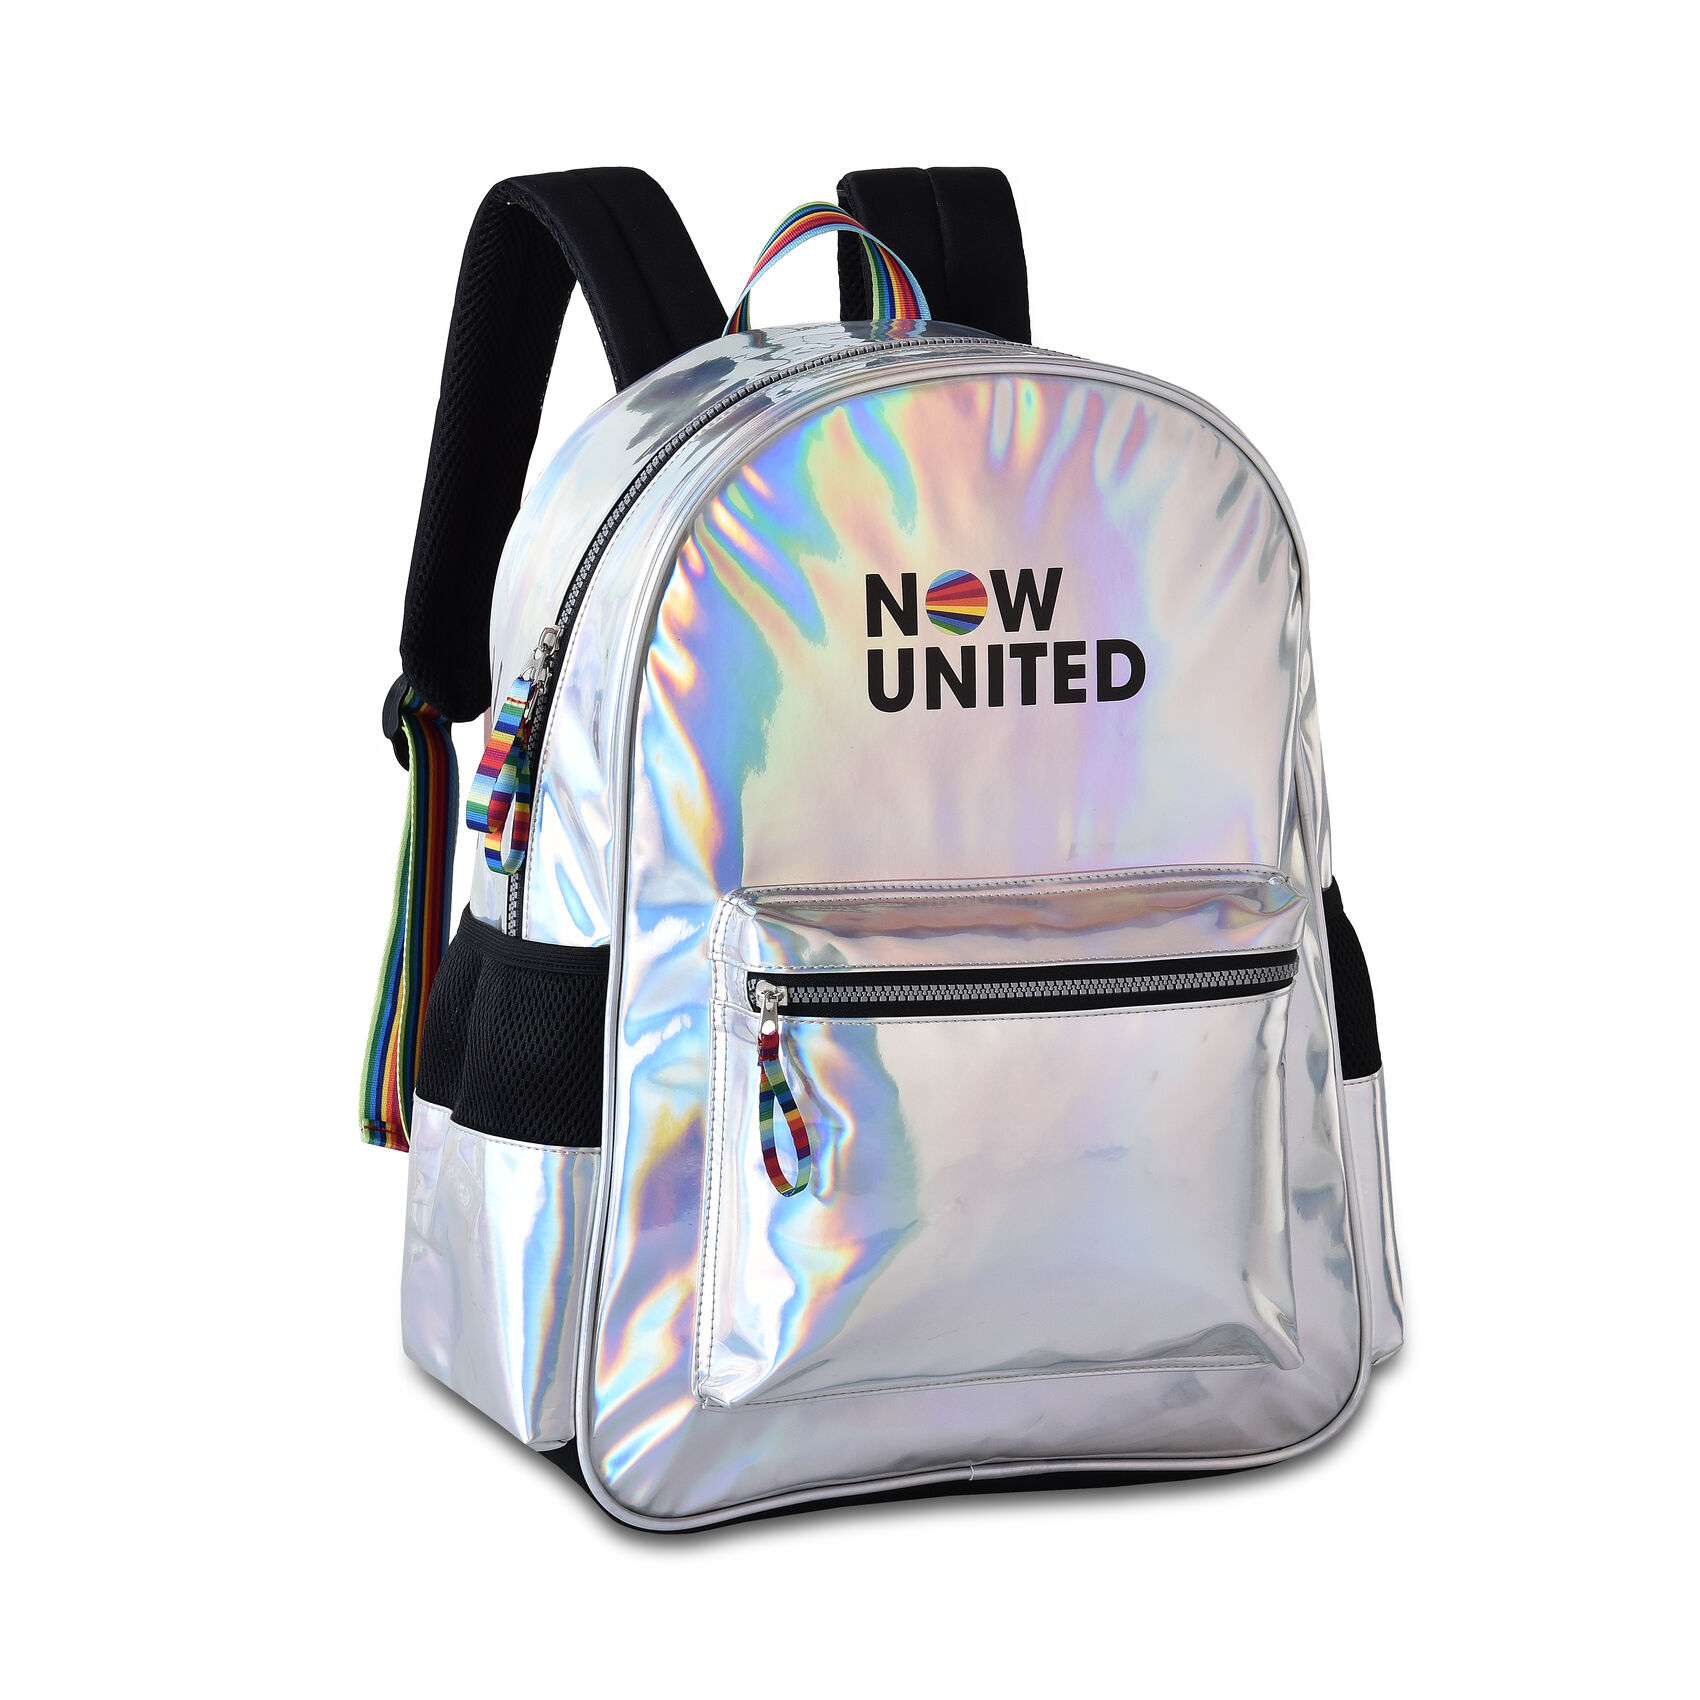 MOCHILA NOW UNITED CLIO